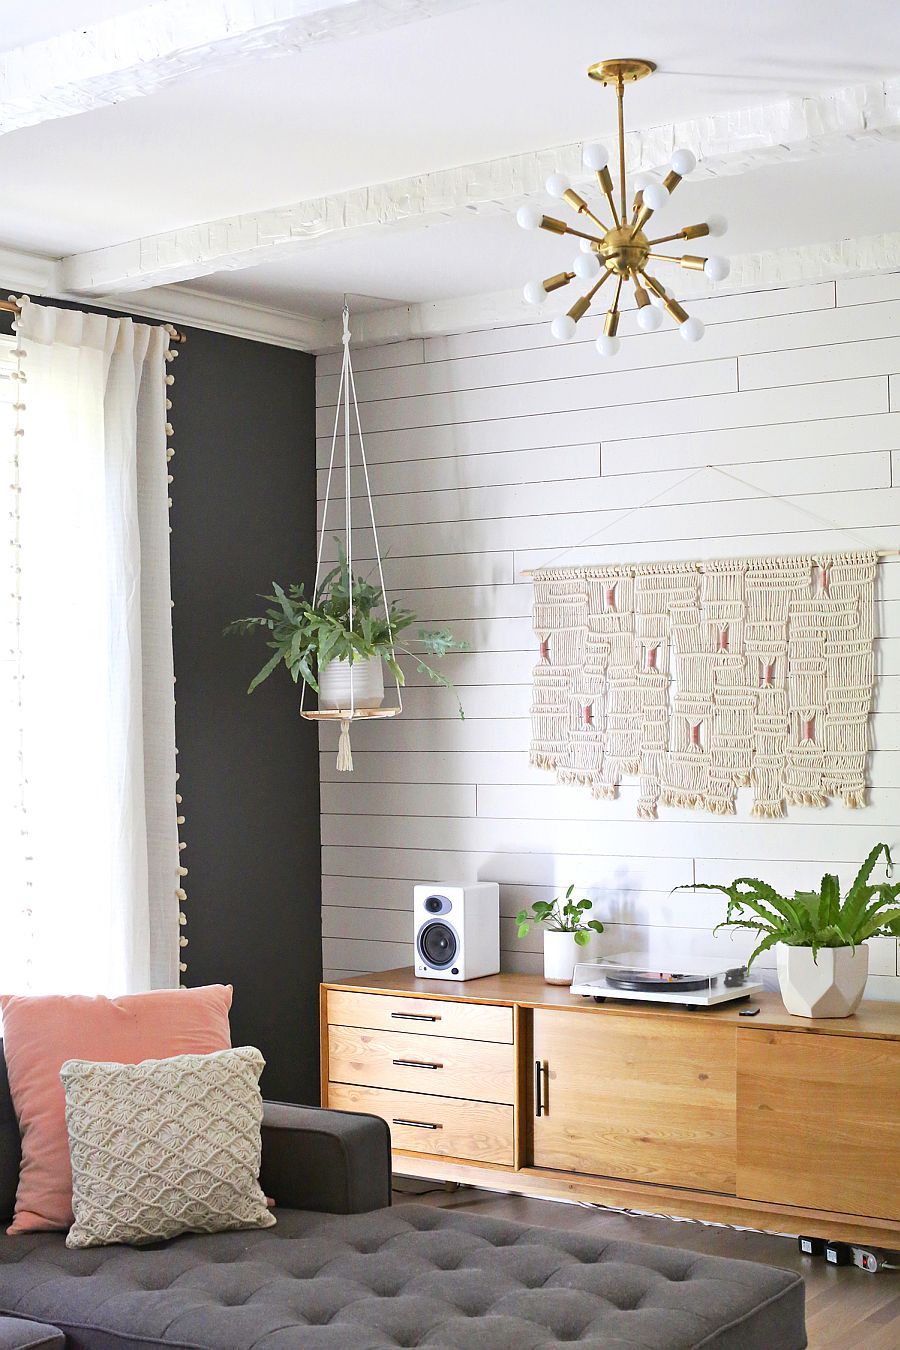 Hanging shelf can also be used as a plant stand